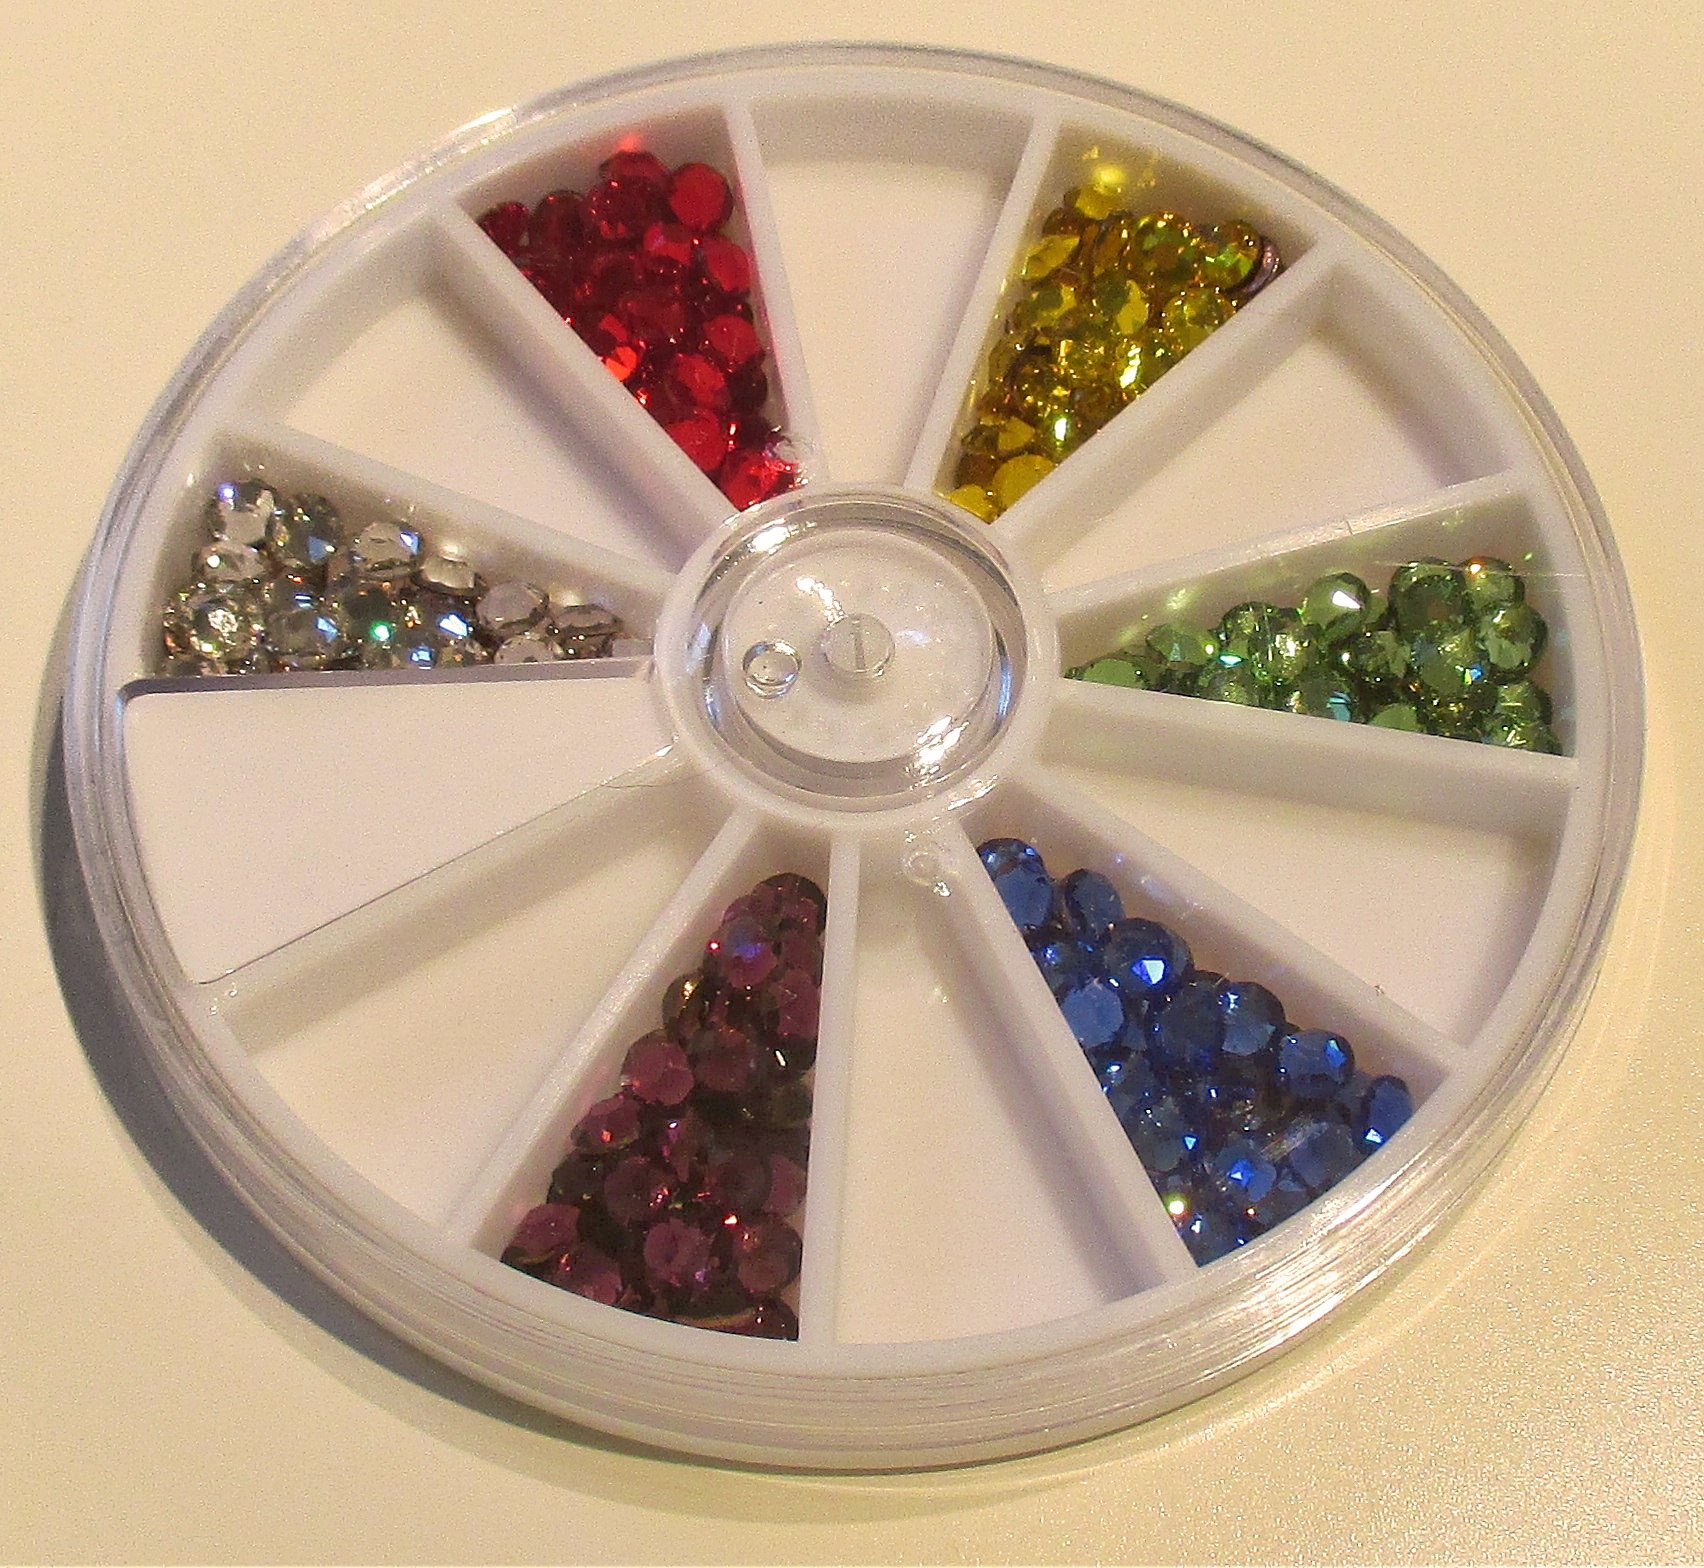 16ss/4mm Primary 6 Color Variety Pack Swarovski Flat Back Hotfix